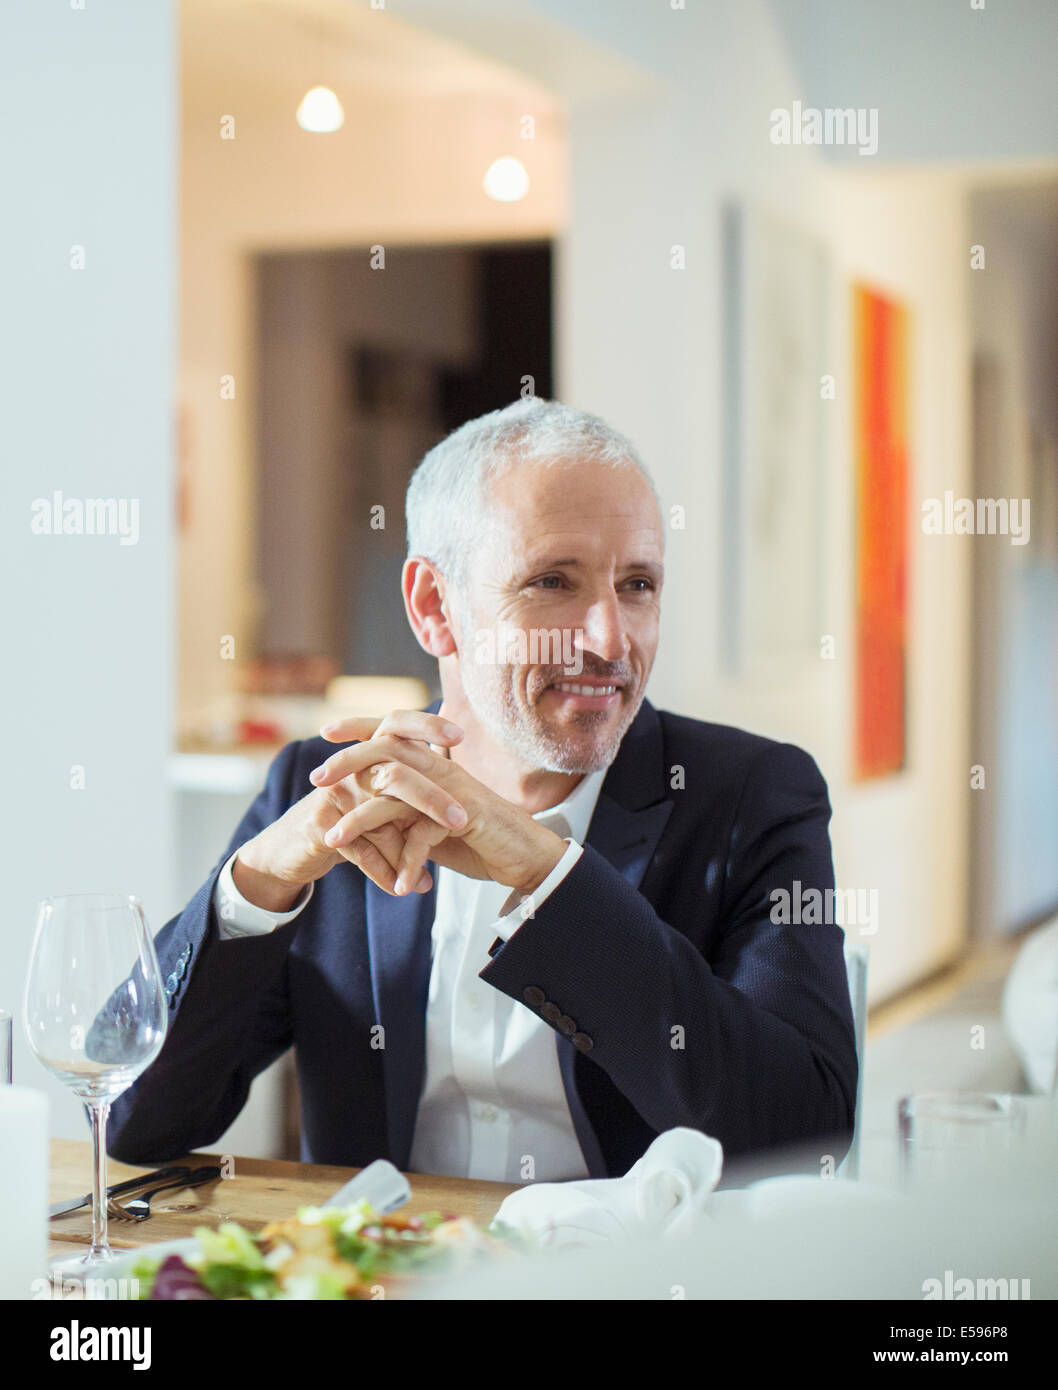 Man sitting at dinner party - Stock Image